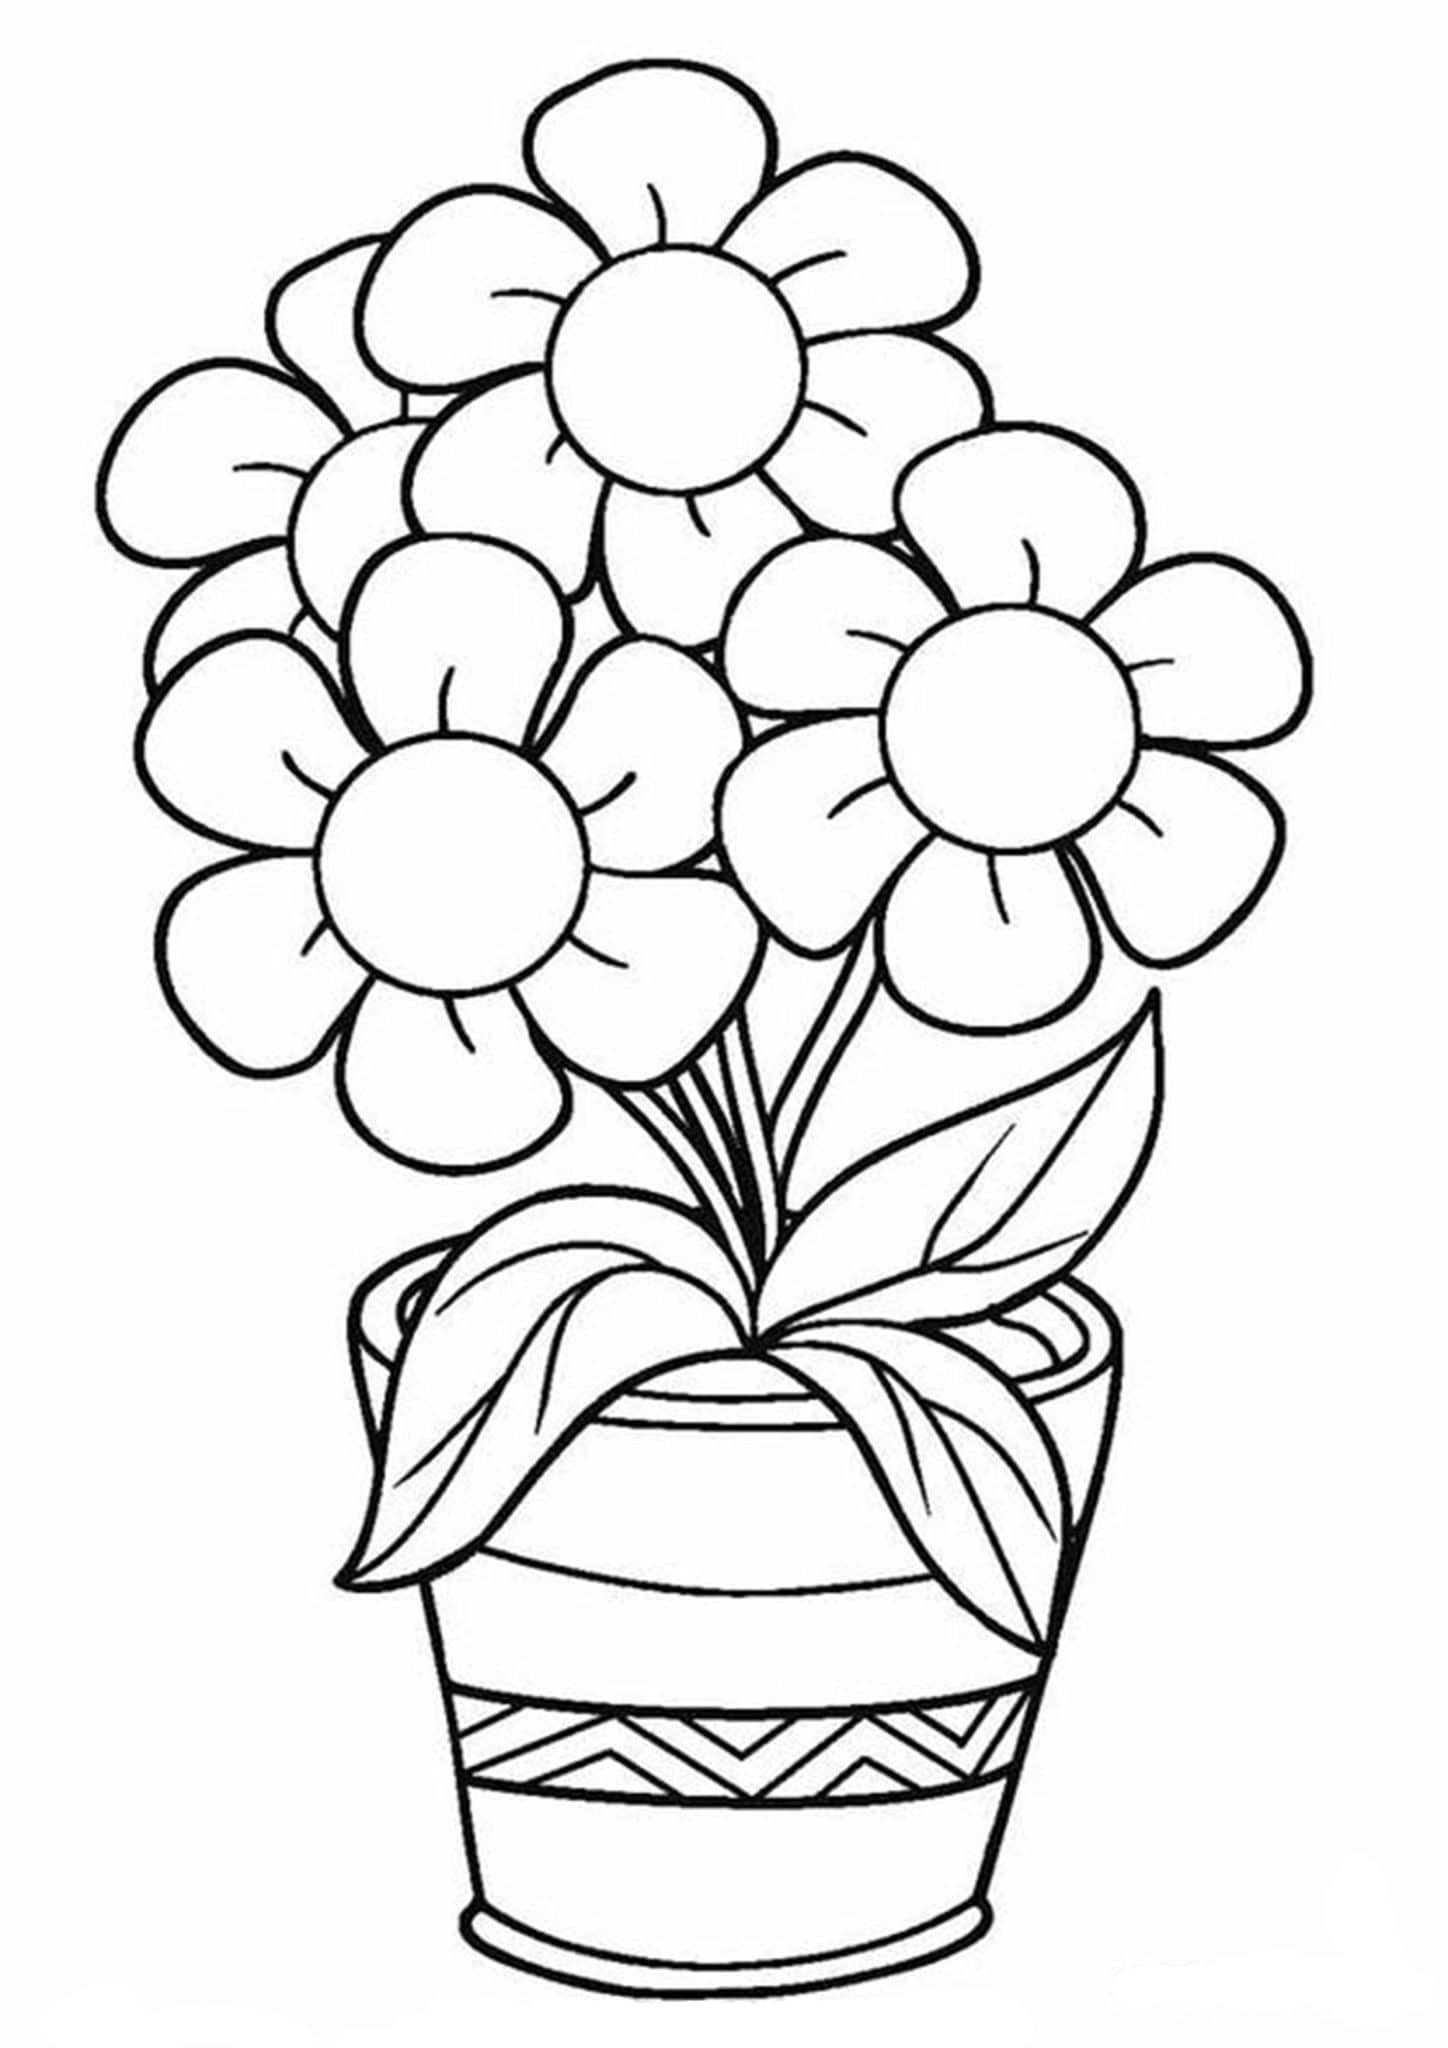 childrens coloring pages flowers free printable flower coloring pages for kids best flowers childrens coloring pages